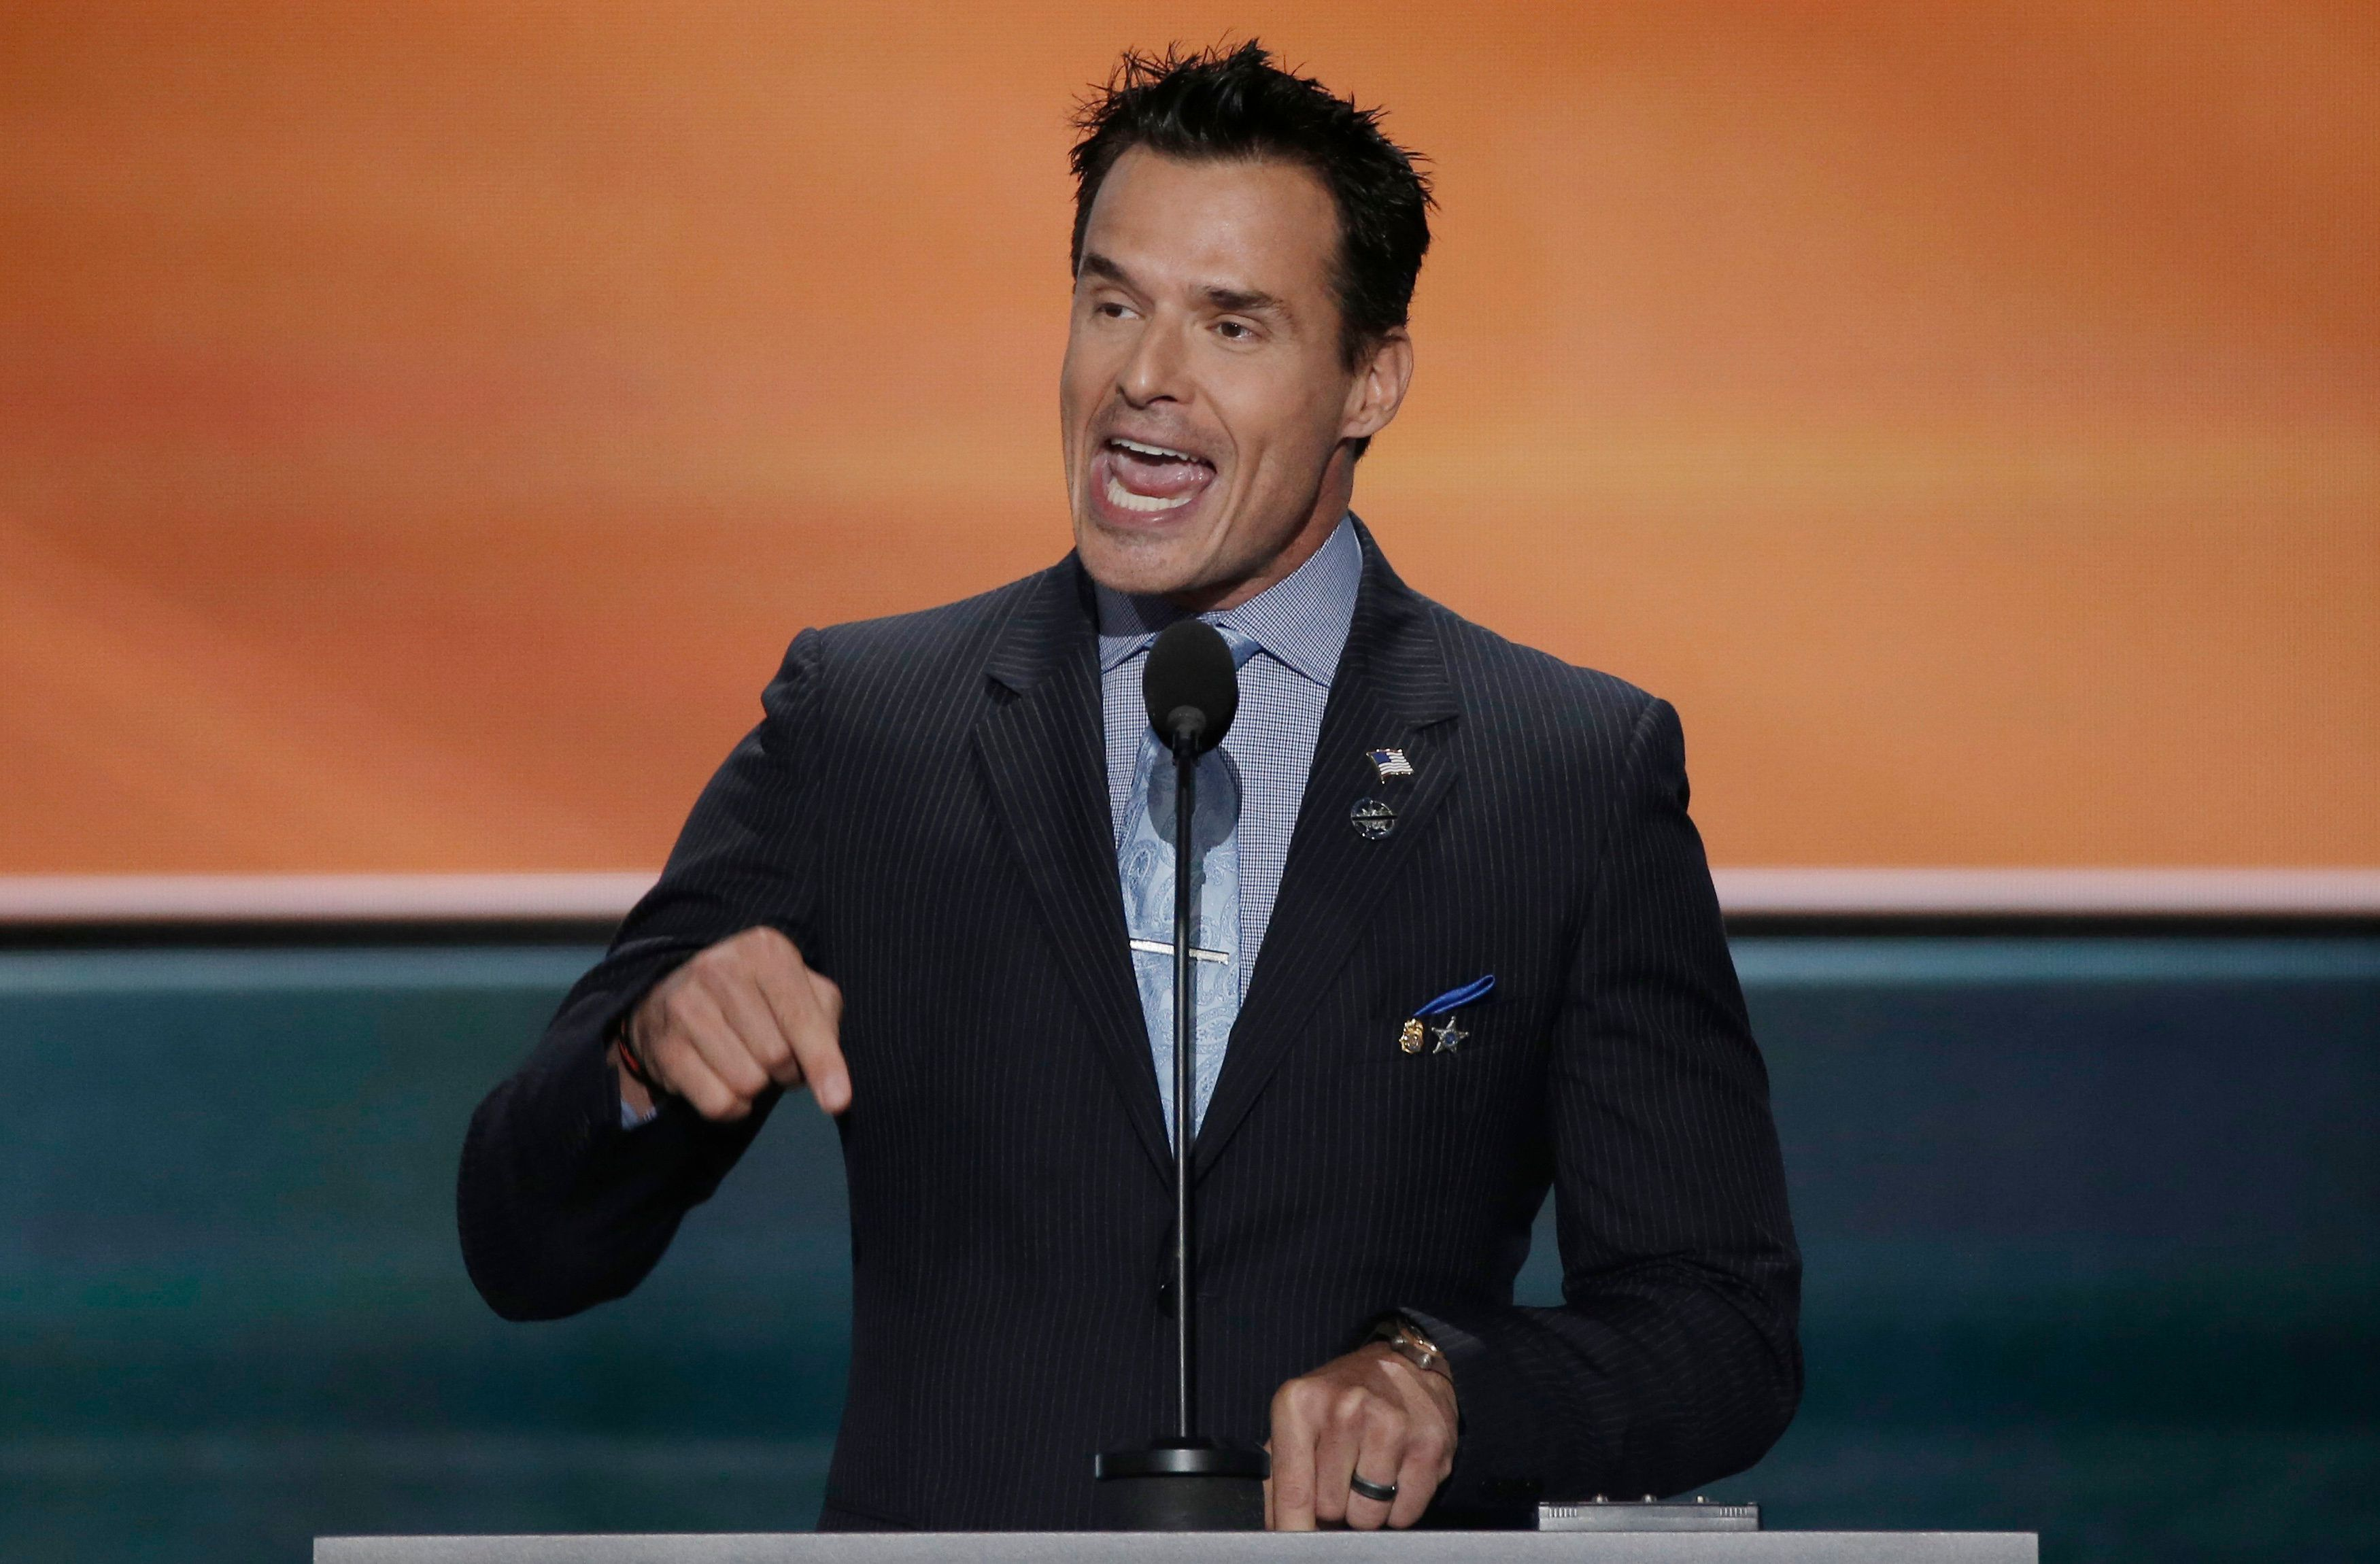 Actor Antonio Sabato Jr. speaks at the Republican National Convention in Cleveland, Ohio, U.S., July 18, 2016. REUTERS/Mike Segar